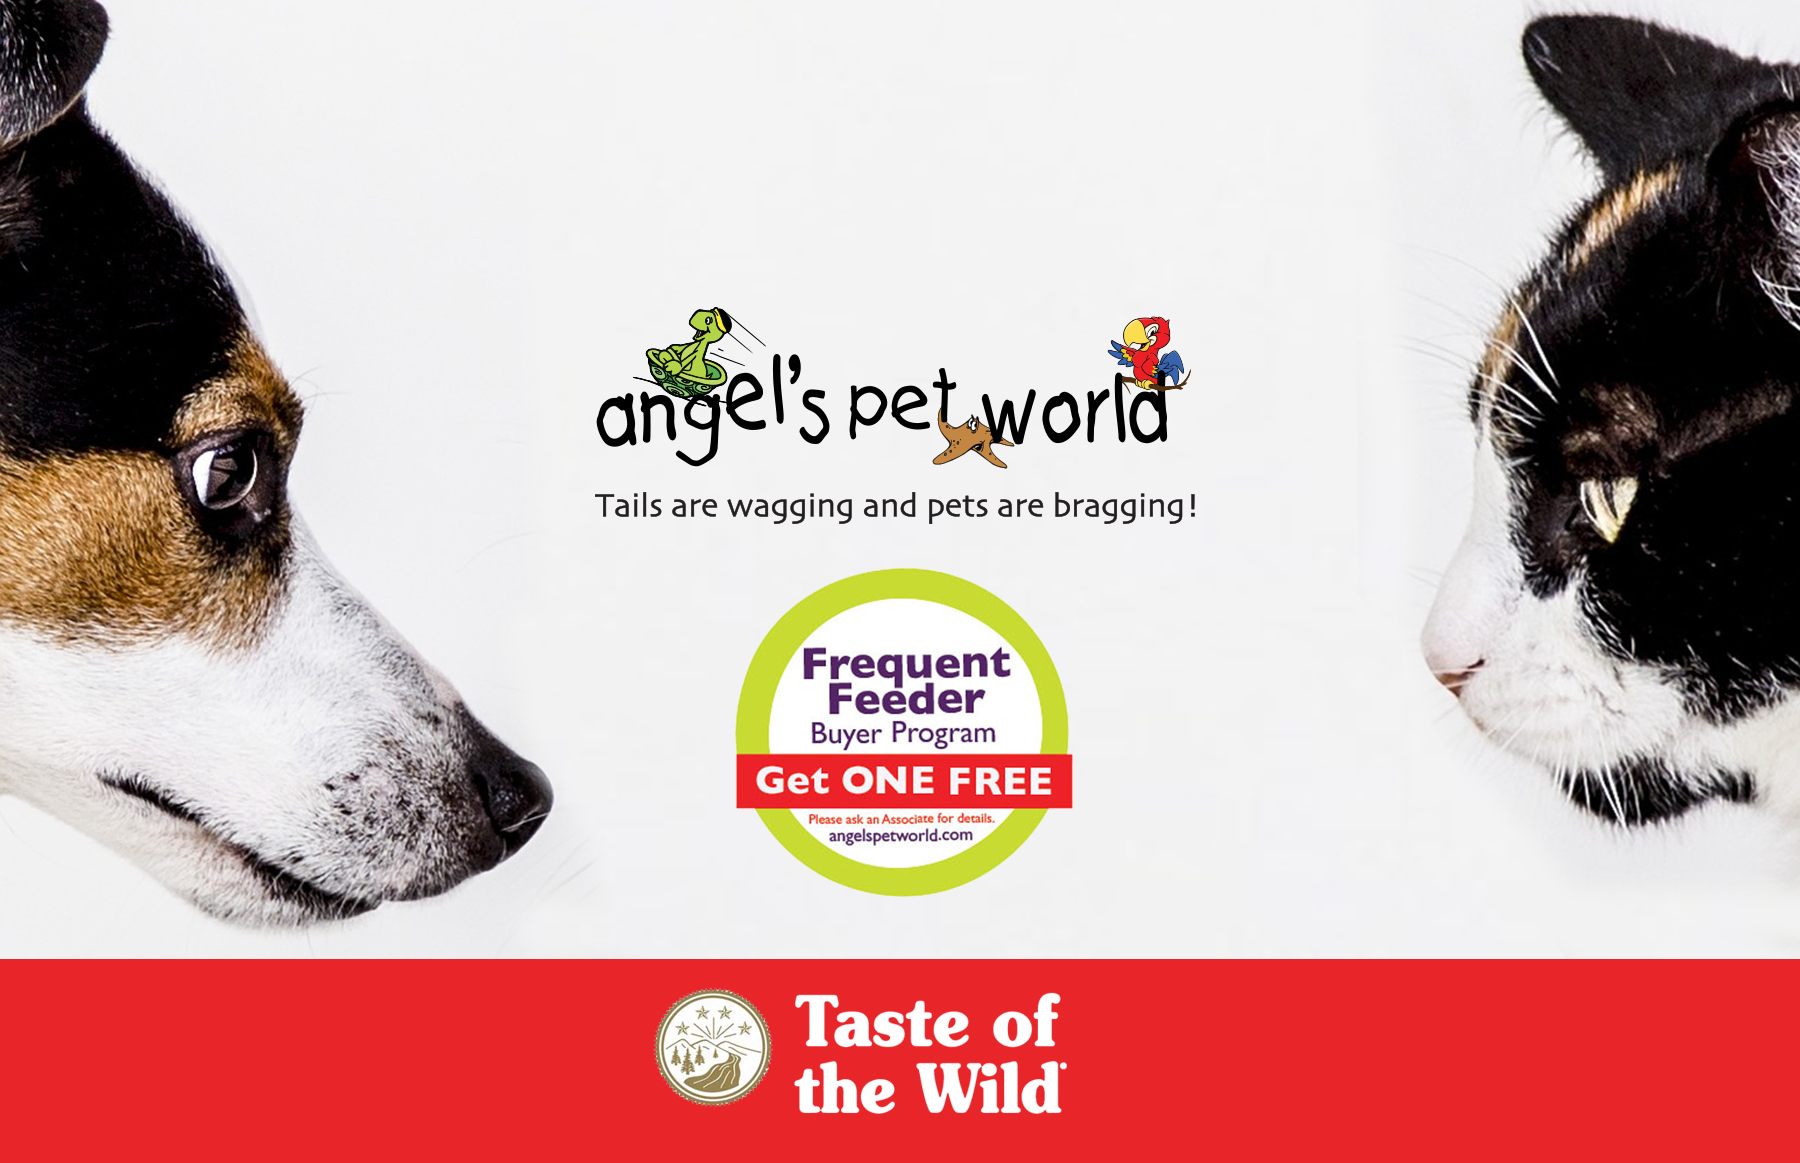 taste-of-the-wild-pet-supply-angels-pet-world-hudson-wi